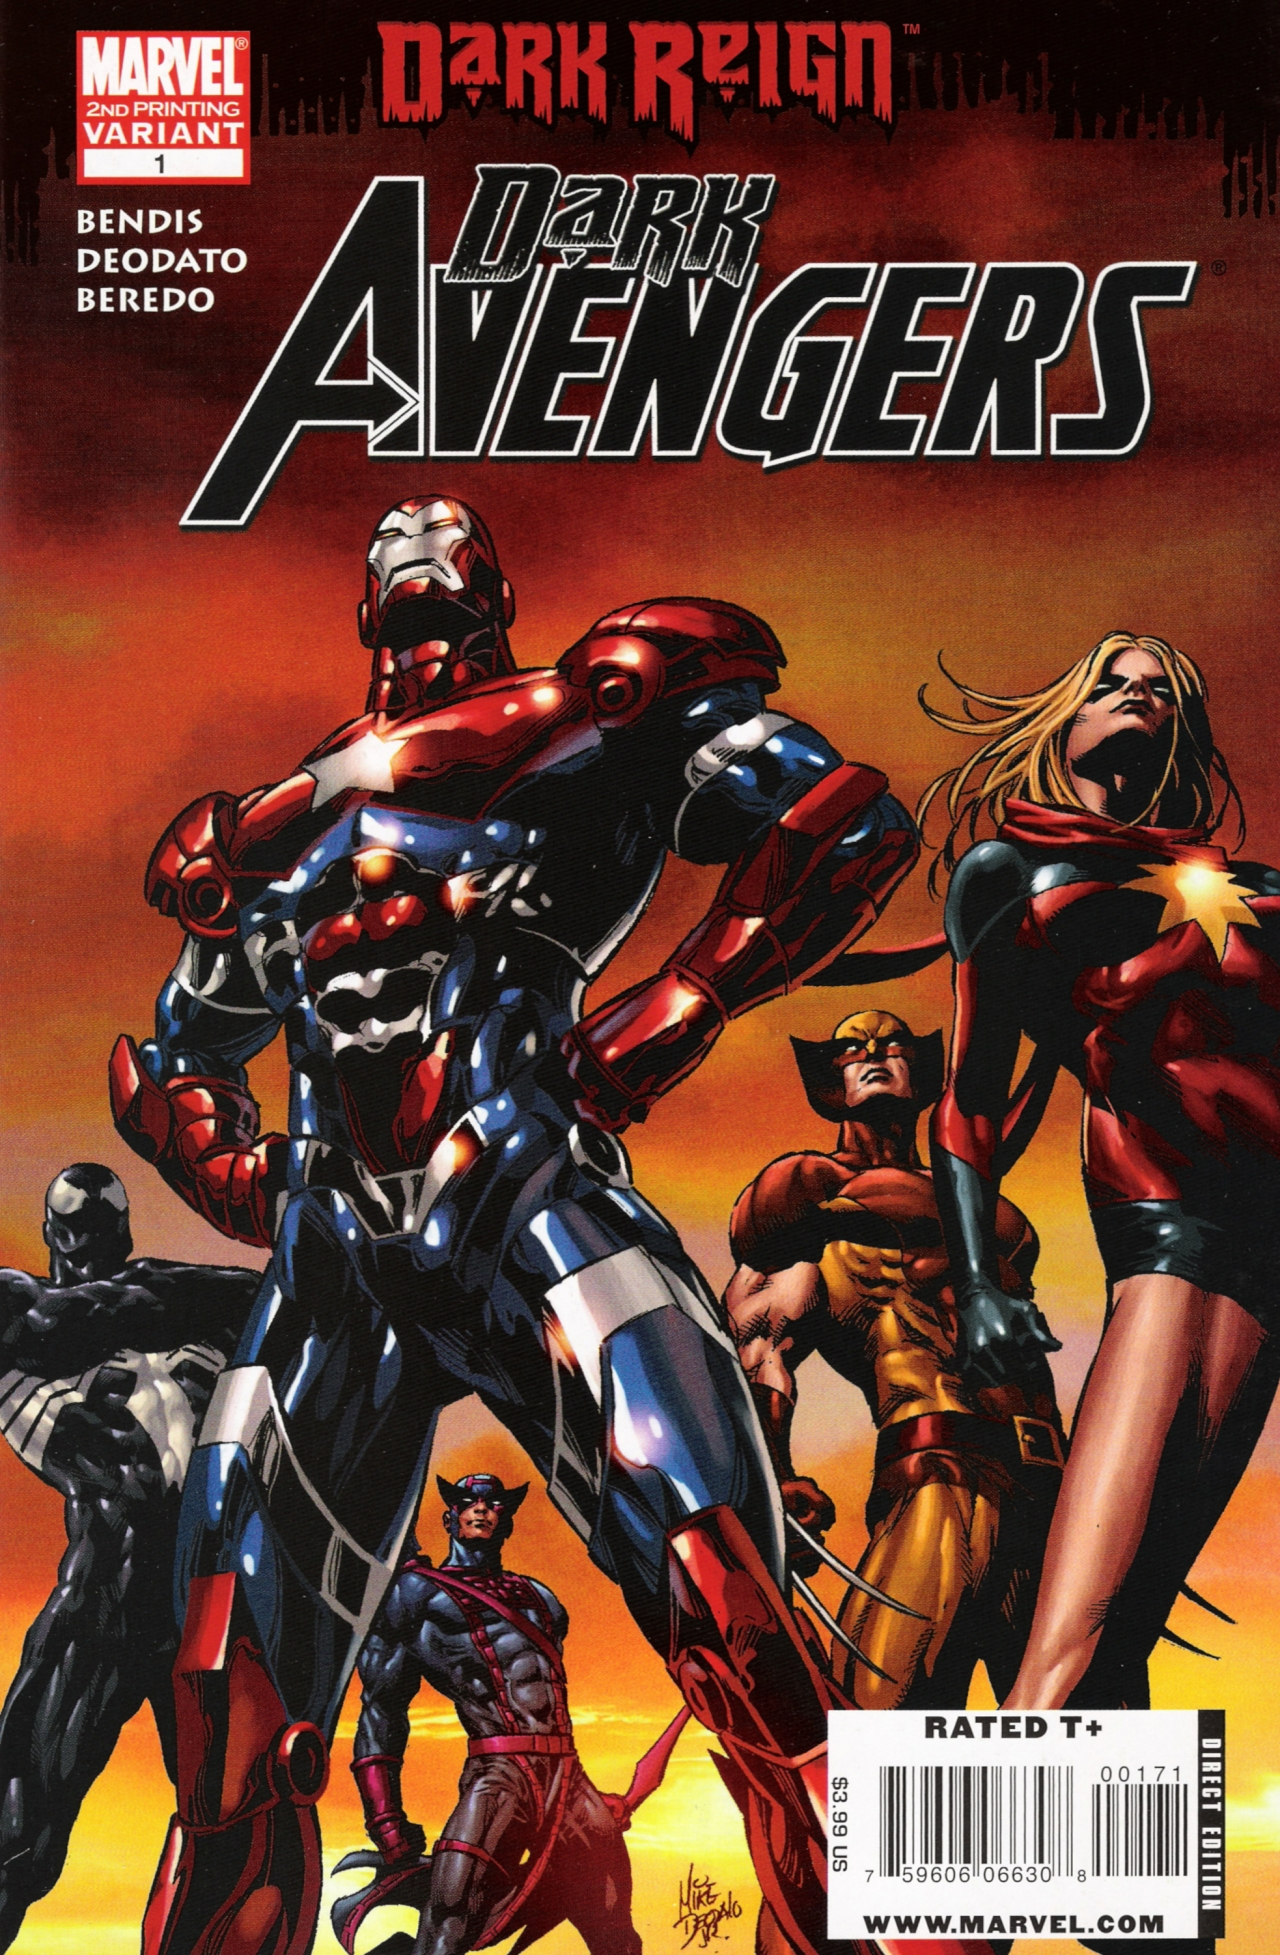 FOR SALE: Dark Avengers & Other Titles